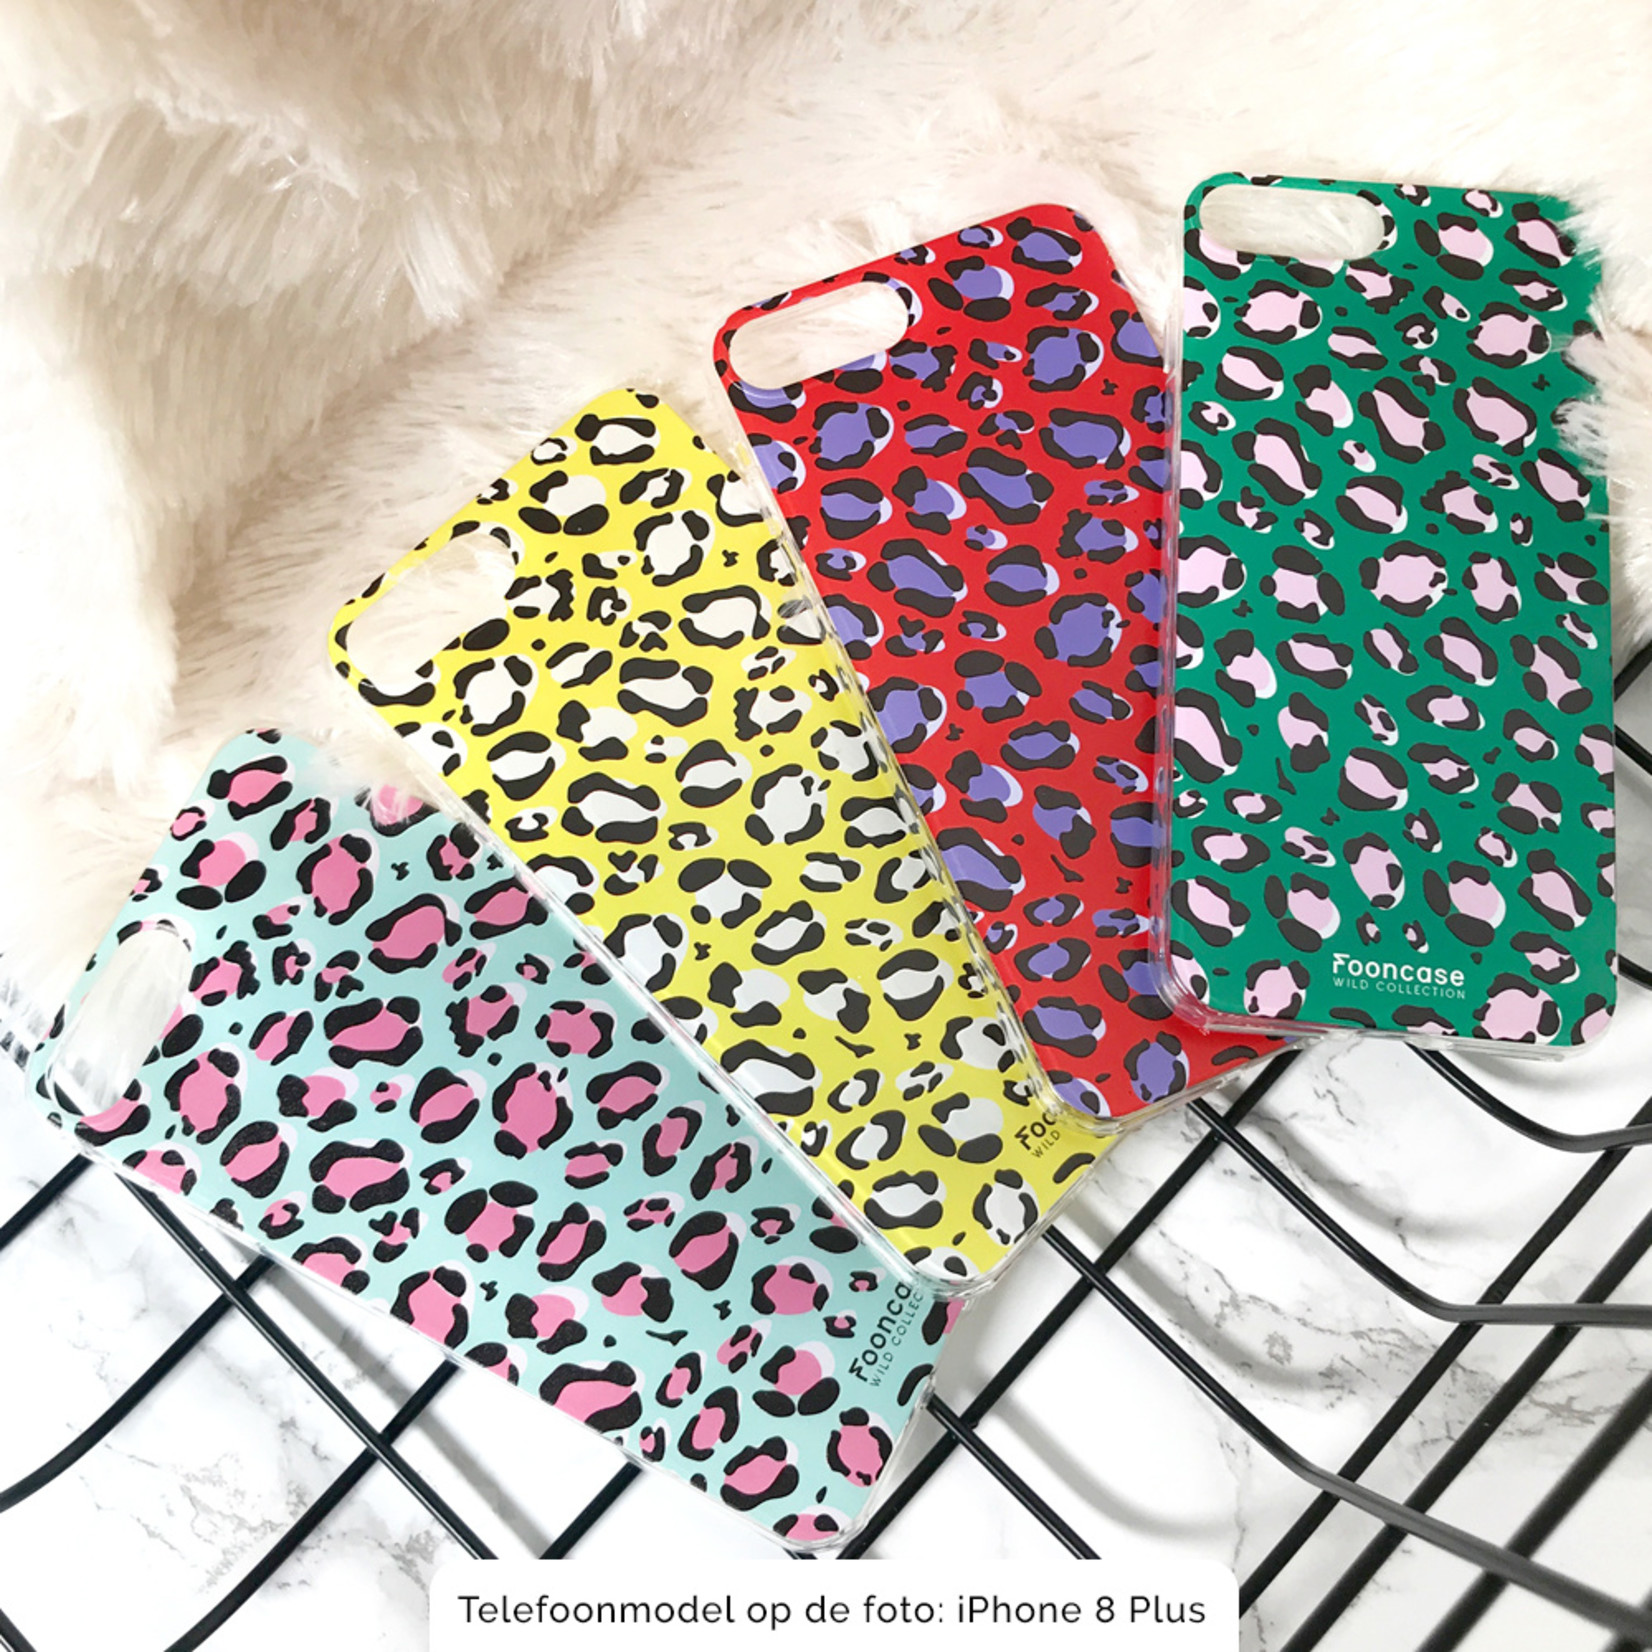 FOONCASE Samsung Galaxy S20 Plus hoesje TPU Soft Case - Back Cover - WILD COLLECTION / Luipaard / Leopard print / Blauw